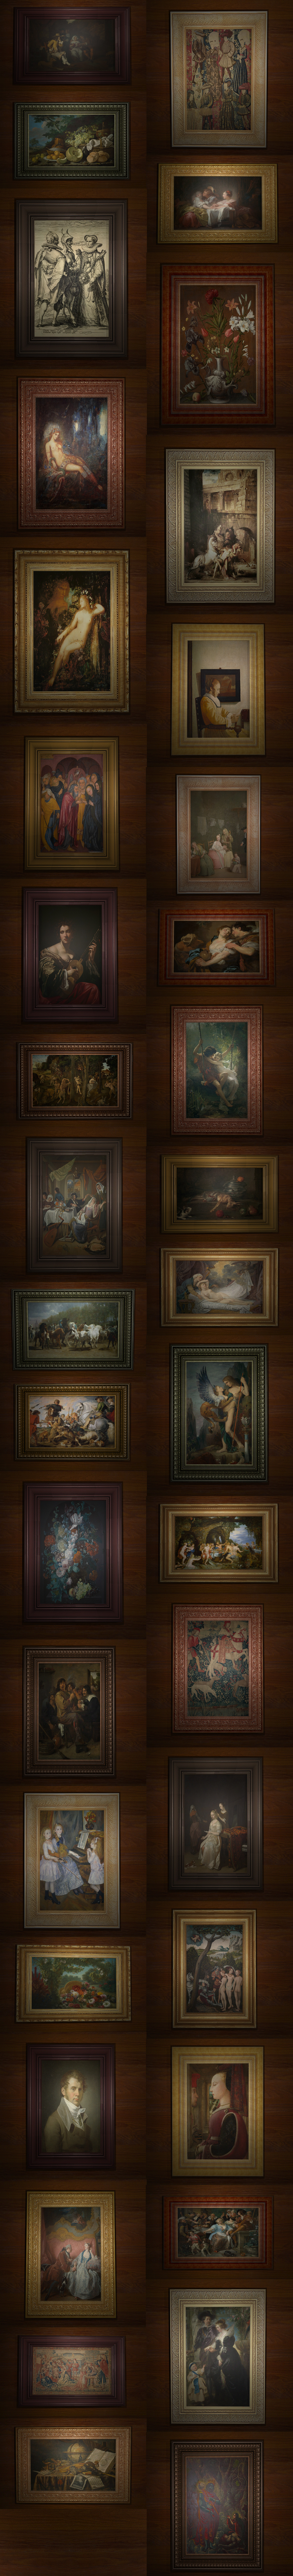 paintings_overview.jpg